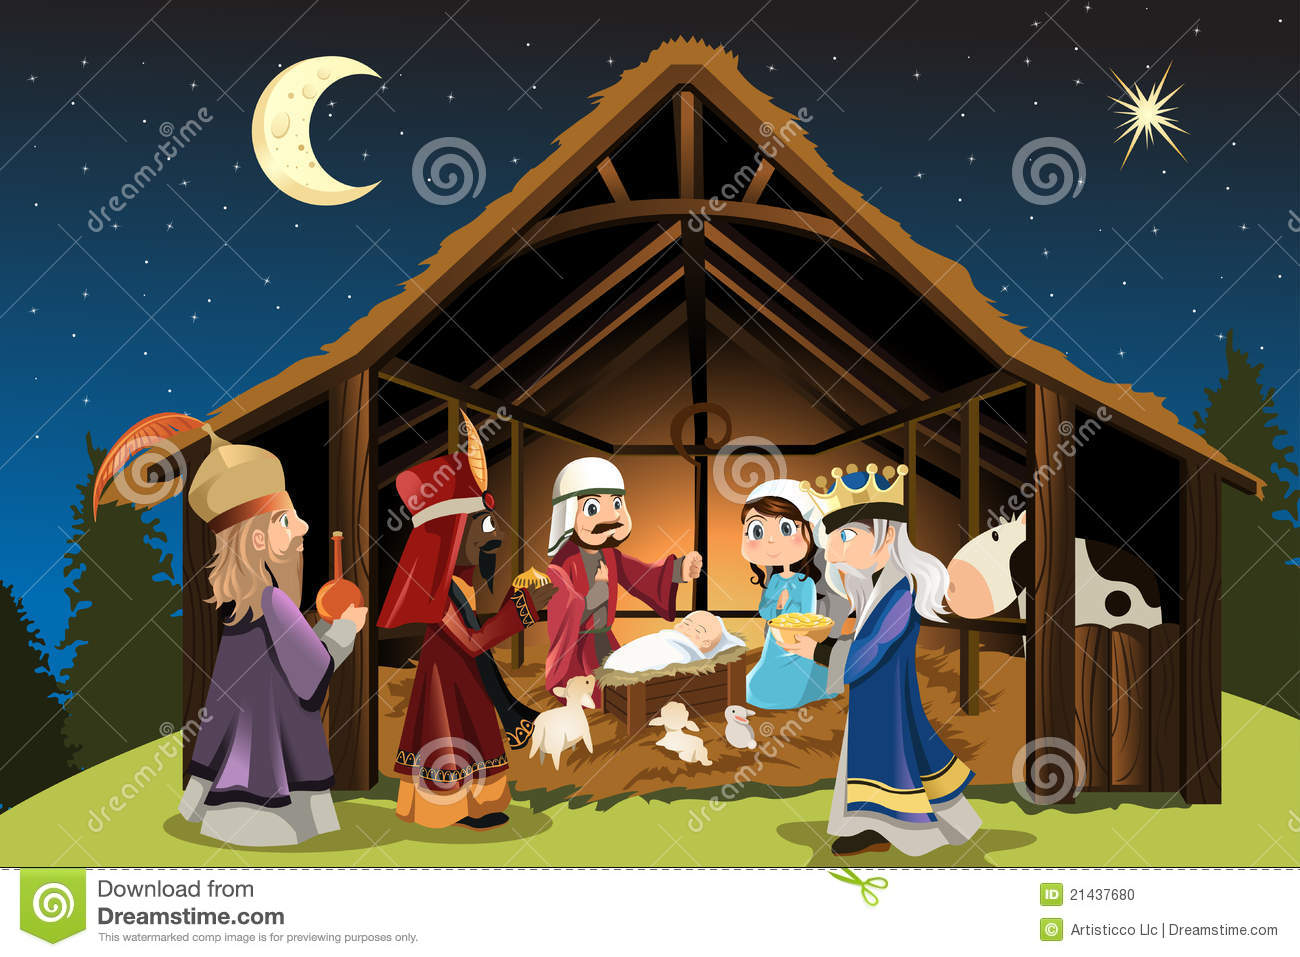 Jesus christ with joseph and mary accompanied by the three wise men